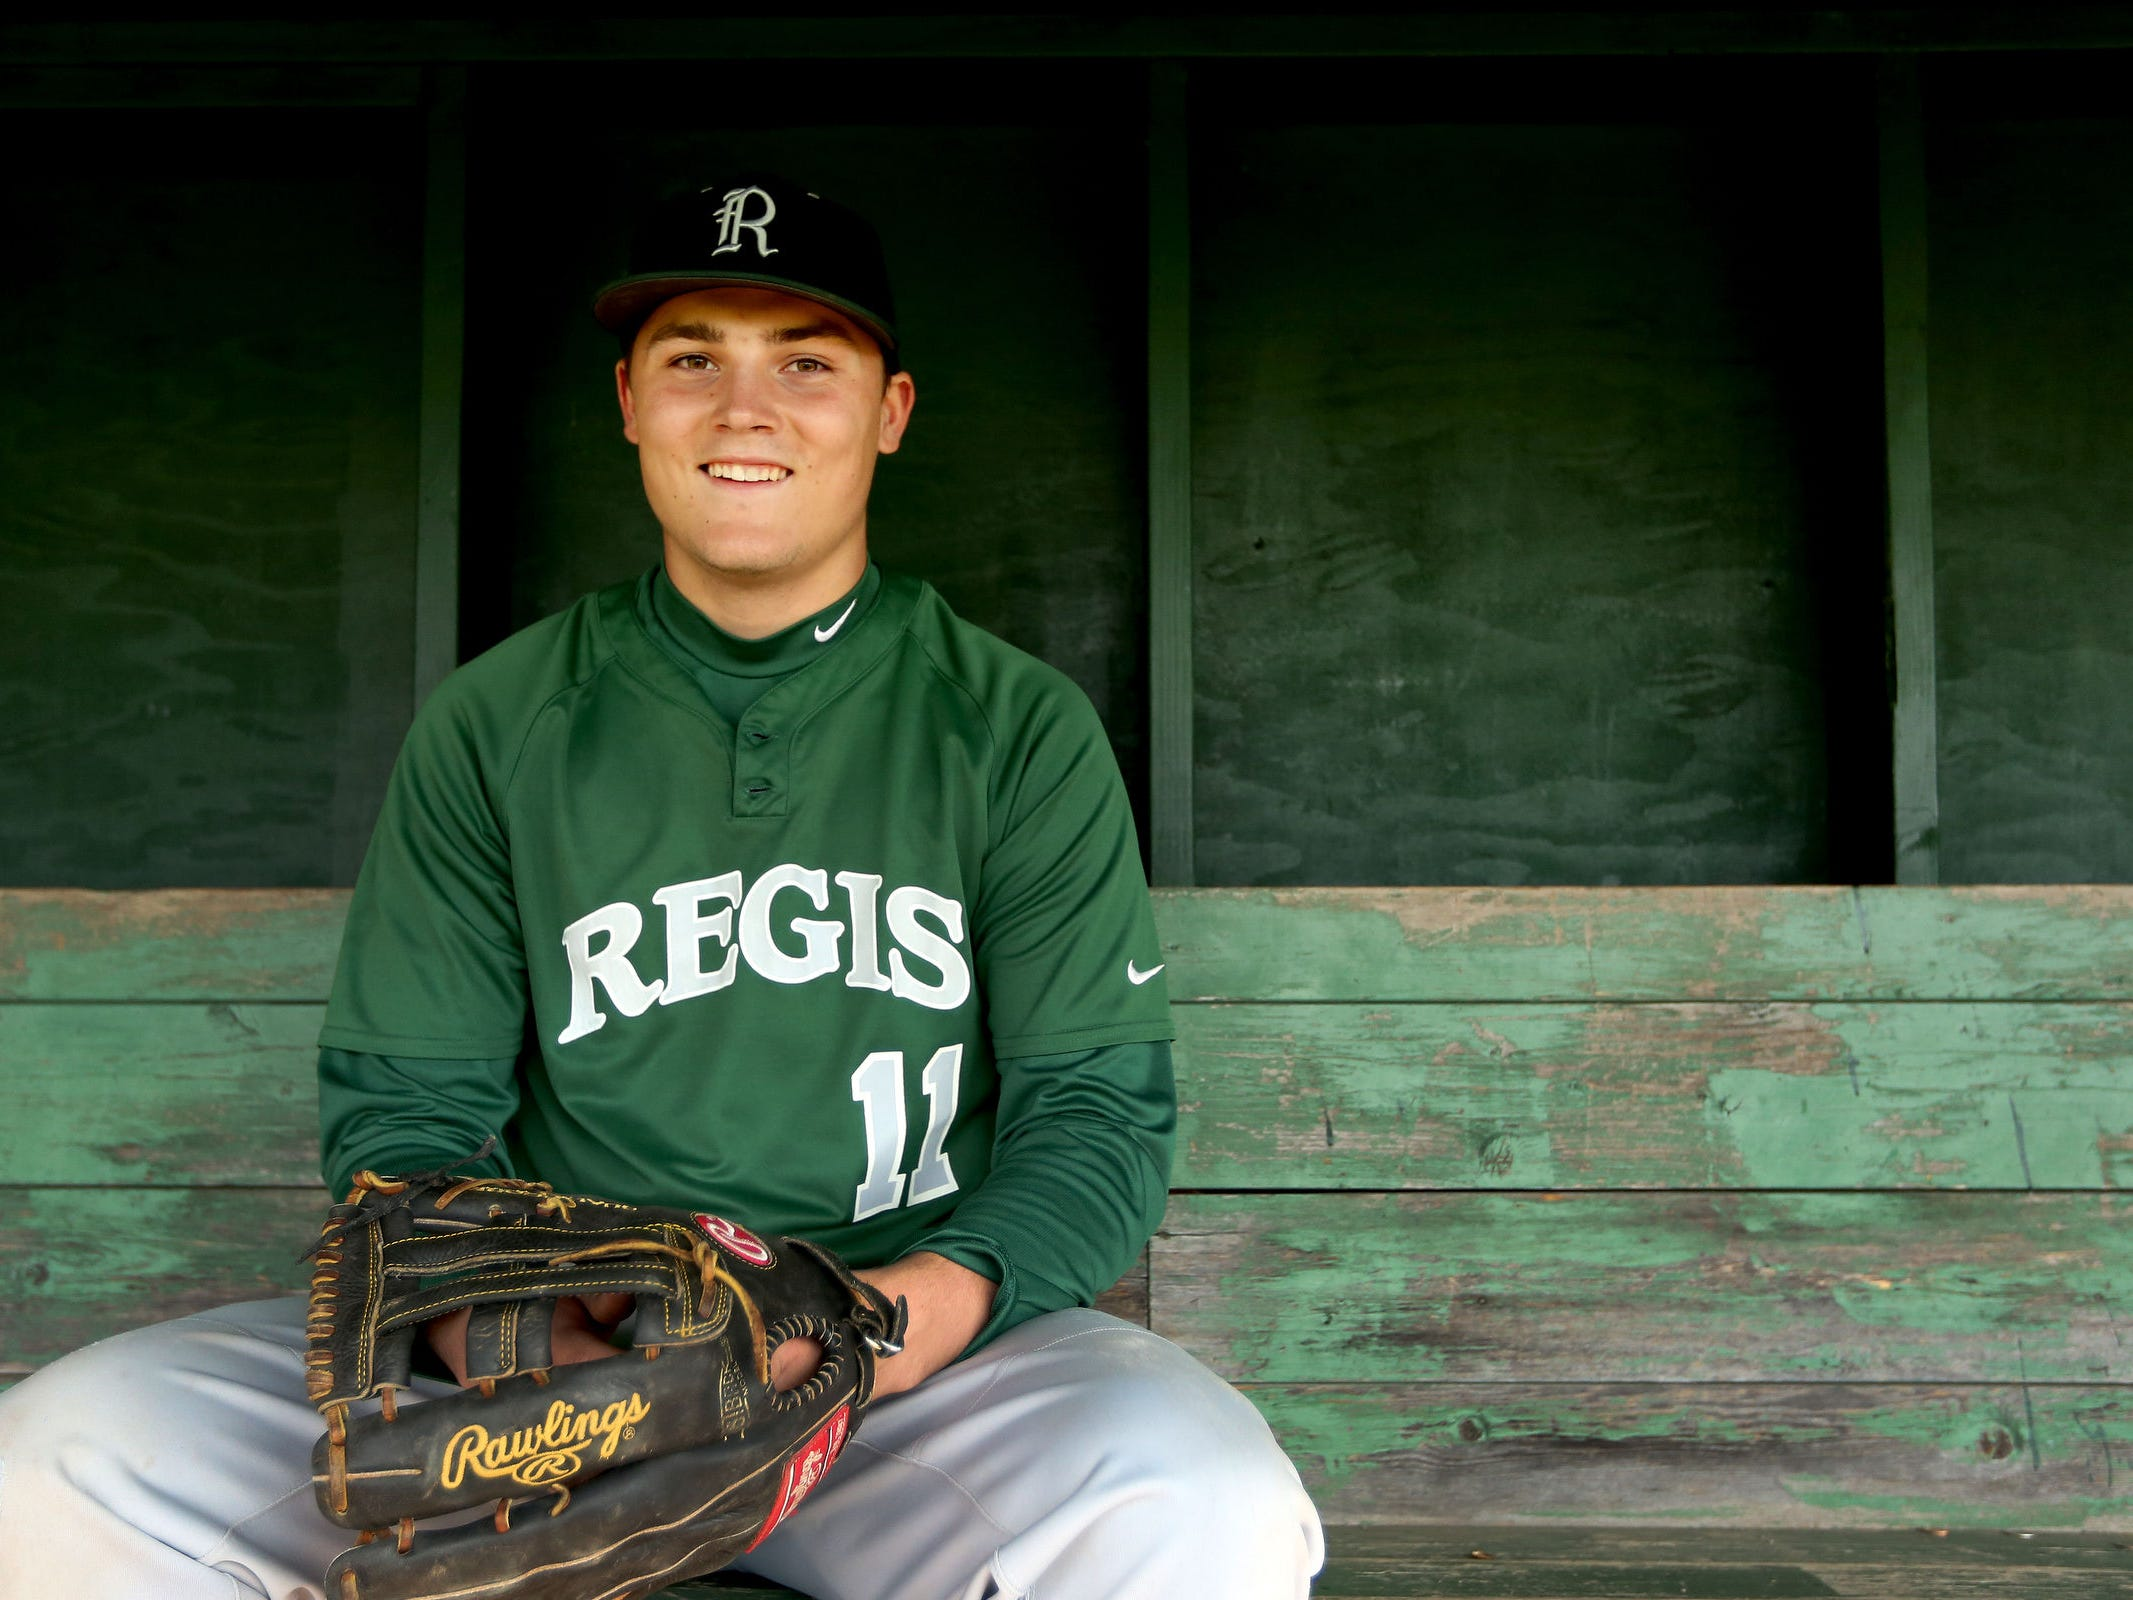 Senior Blake Minten is an all-state player in football, basketball and baseball. Photographed on the baseball field at Regis High School in Stayton, Ore., on Thursday, April 2, 2015.